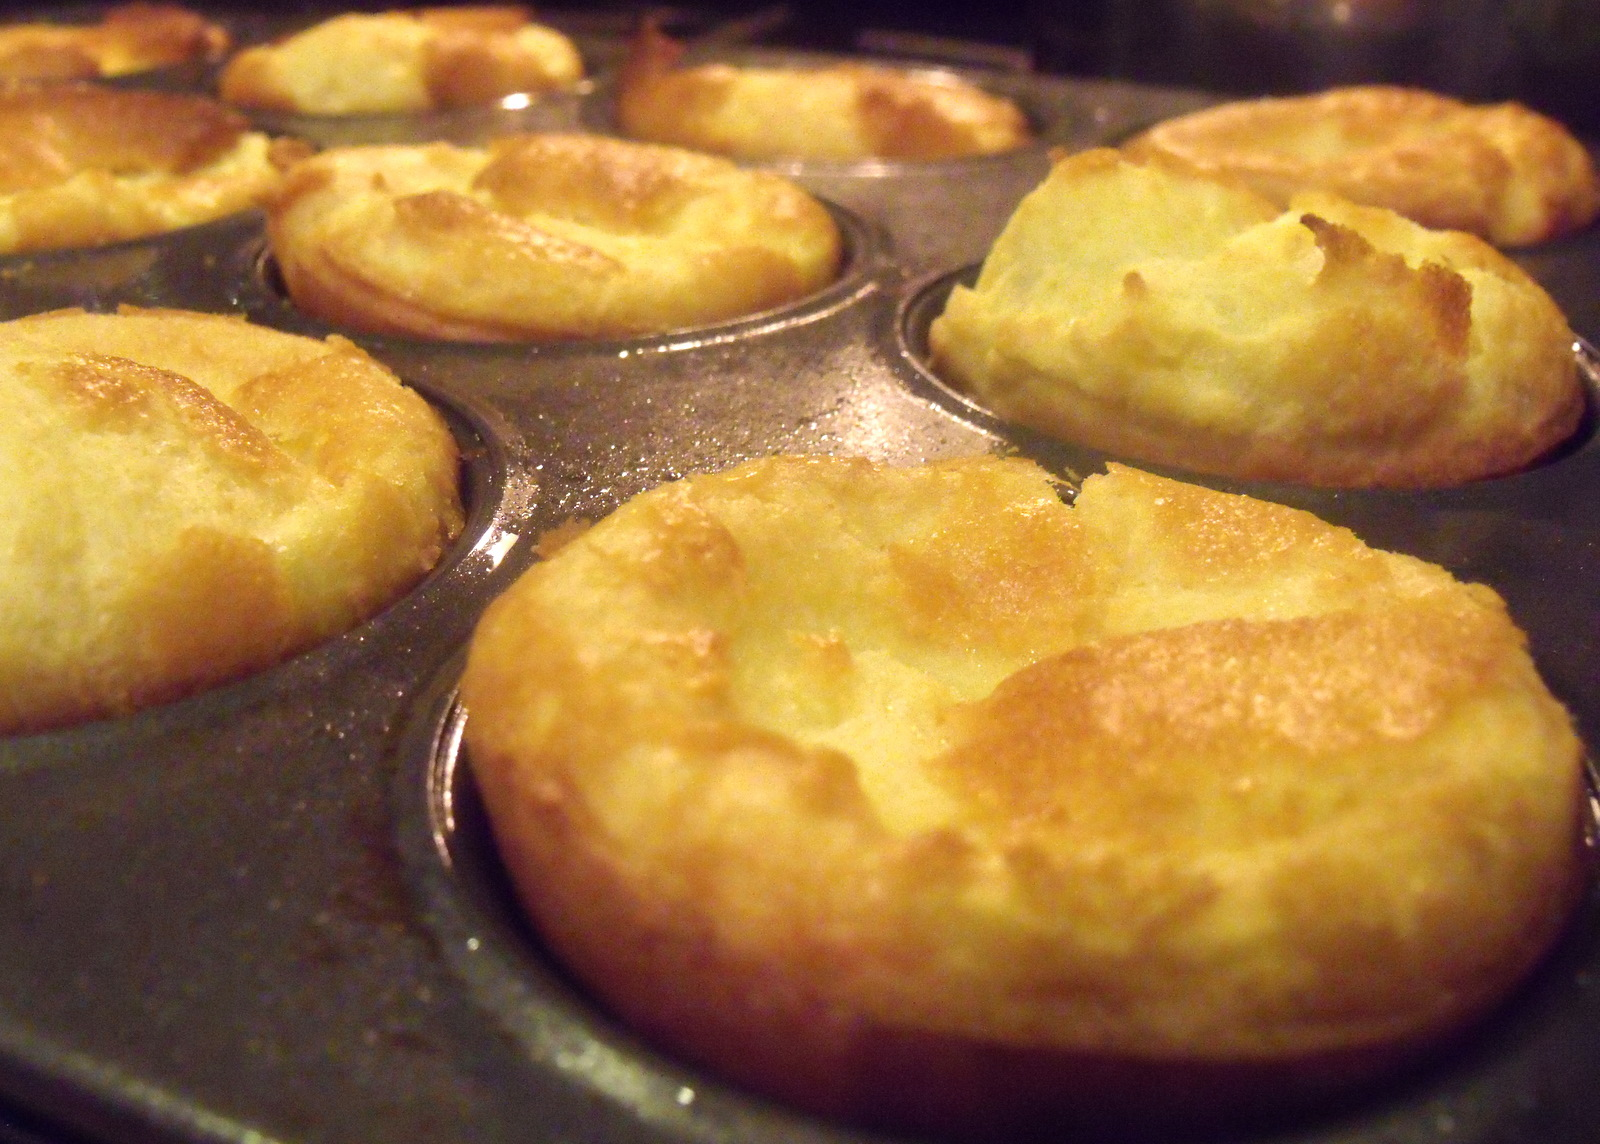 Yorkshire puddings in a muffin pan fresh out of the oven